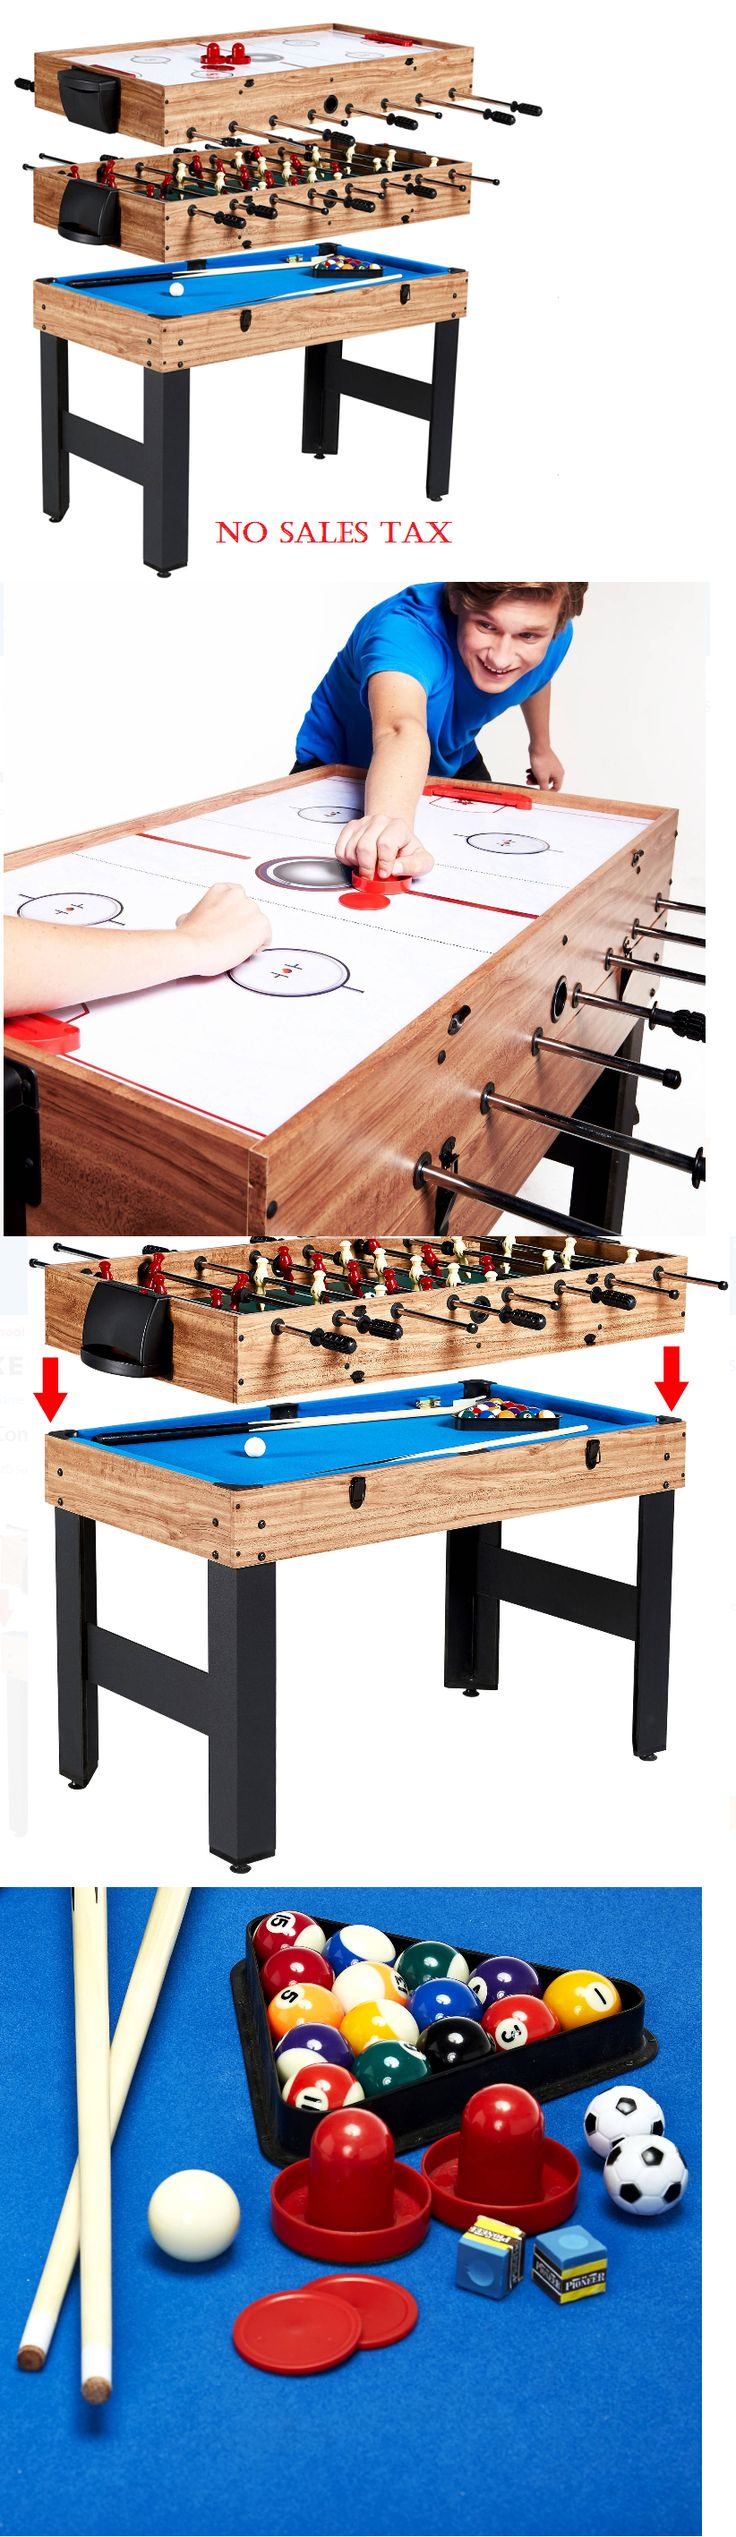 Air Hockey 36275: Pool Table Air Less Slide Hockey Foosball Table Set Top Billiard Combo Game -> BUY IT NOW ONLY: $109.61 on eBay!